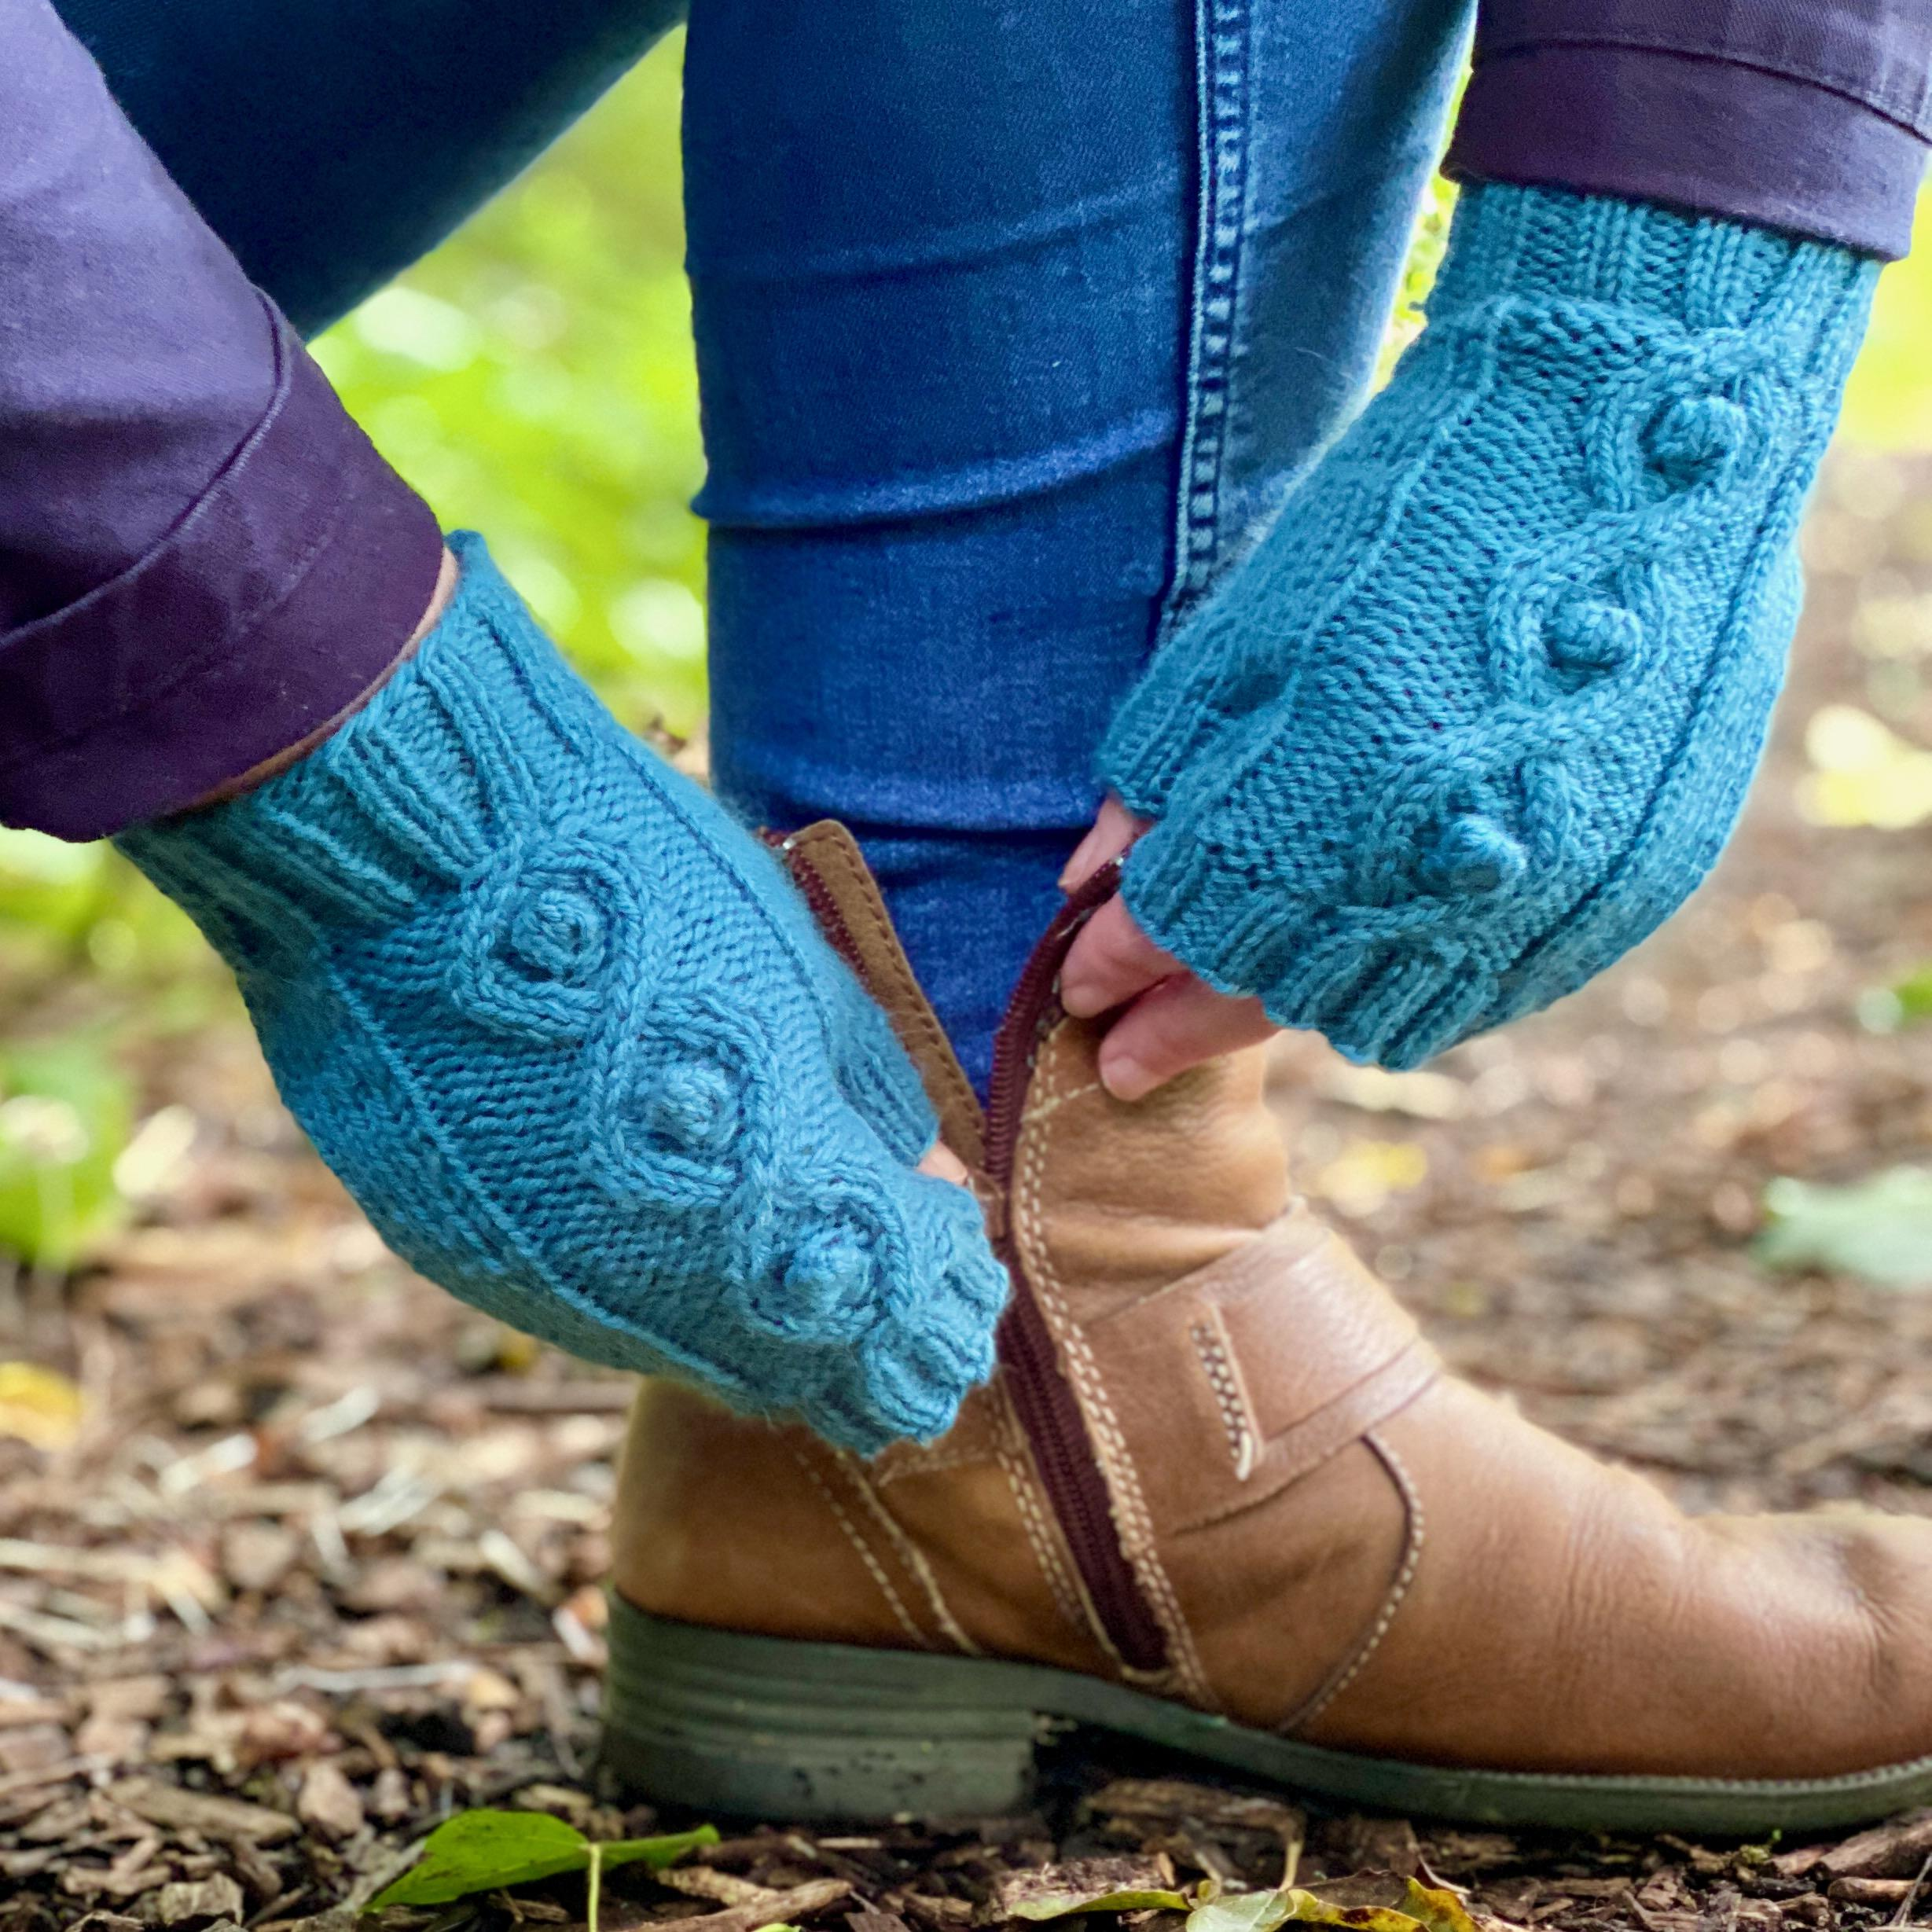 hands wearing cable mittens reaching down to fasten brown leather boots